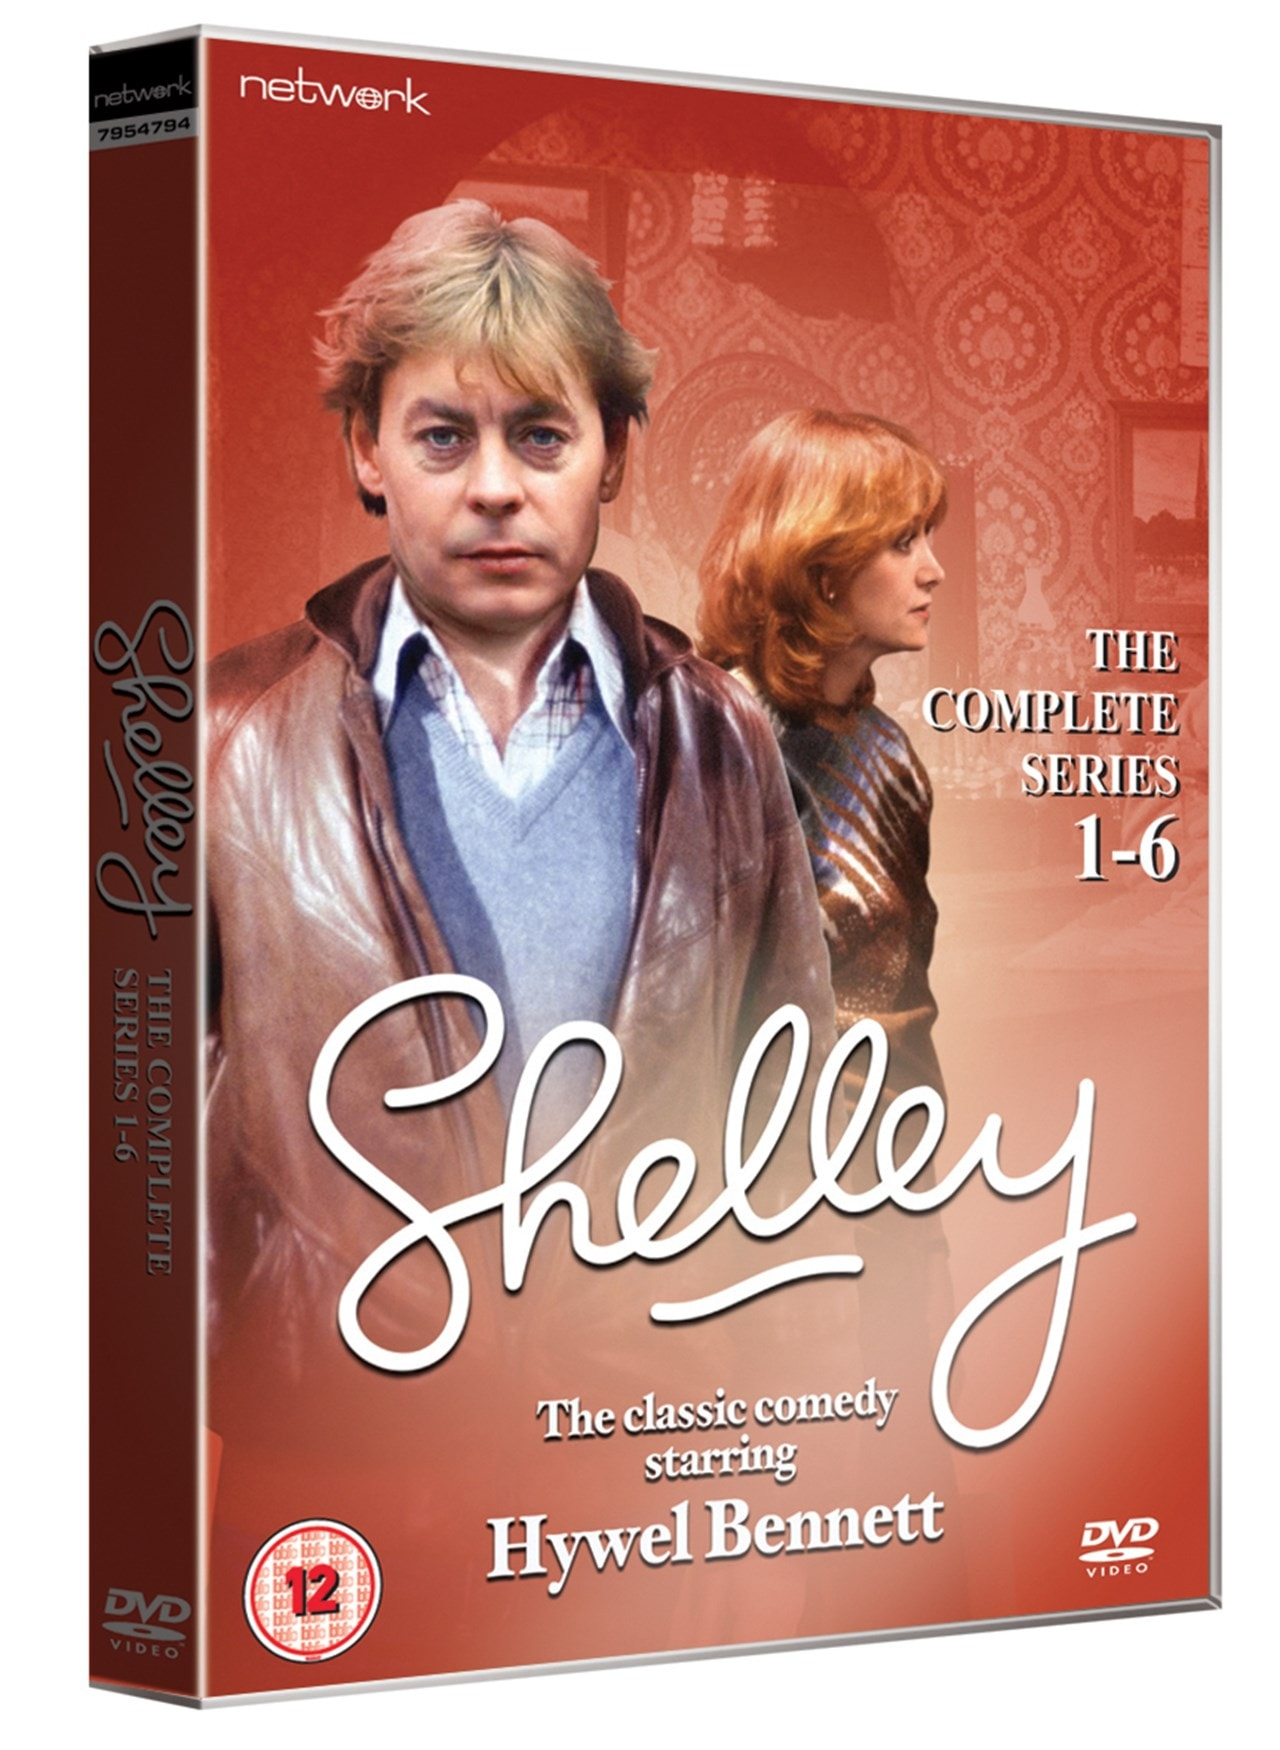 Shelley: The Complete Series 1-6 - 2